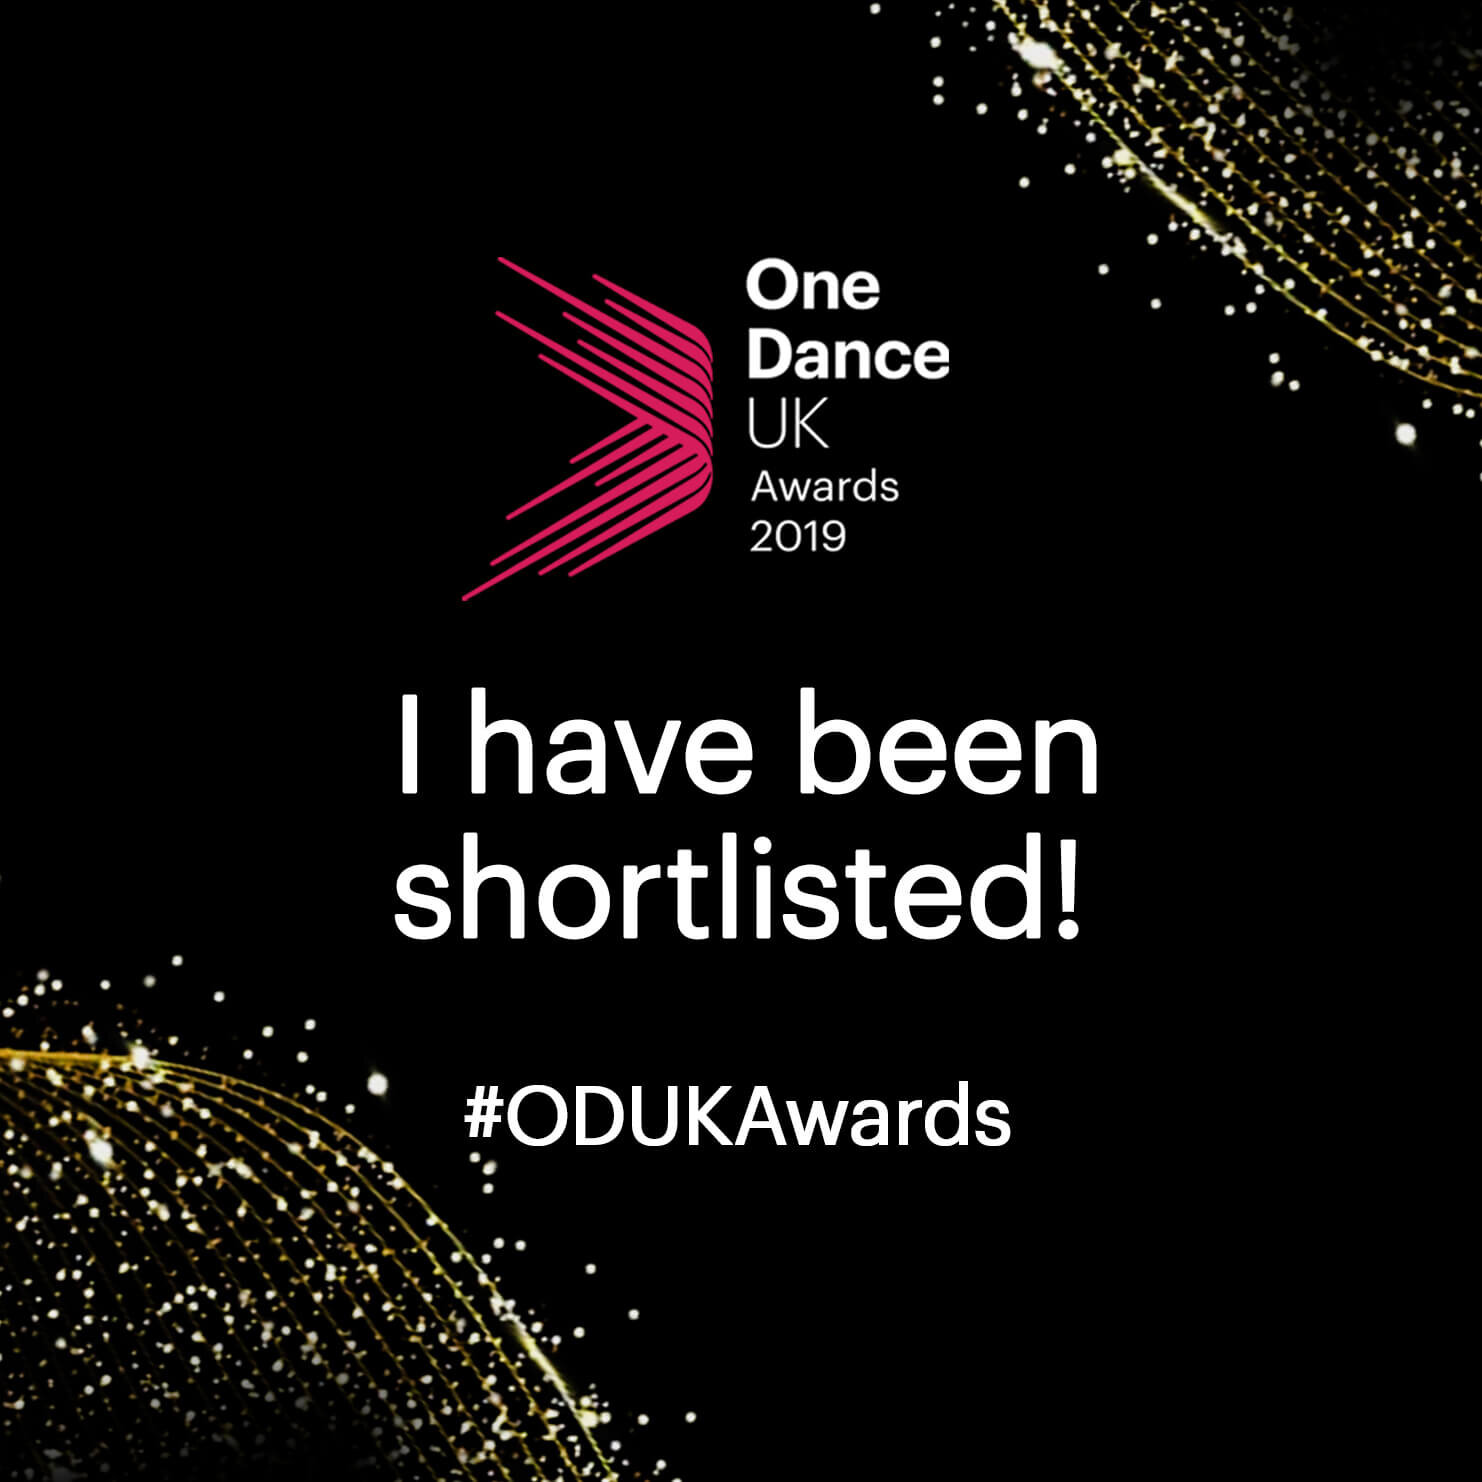 One-Dance-Uk-i-have-been-shortlisted-social-square.jpg